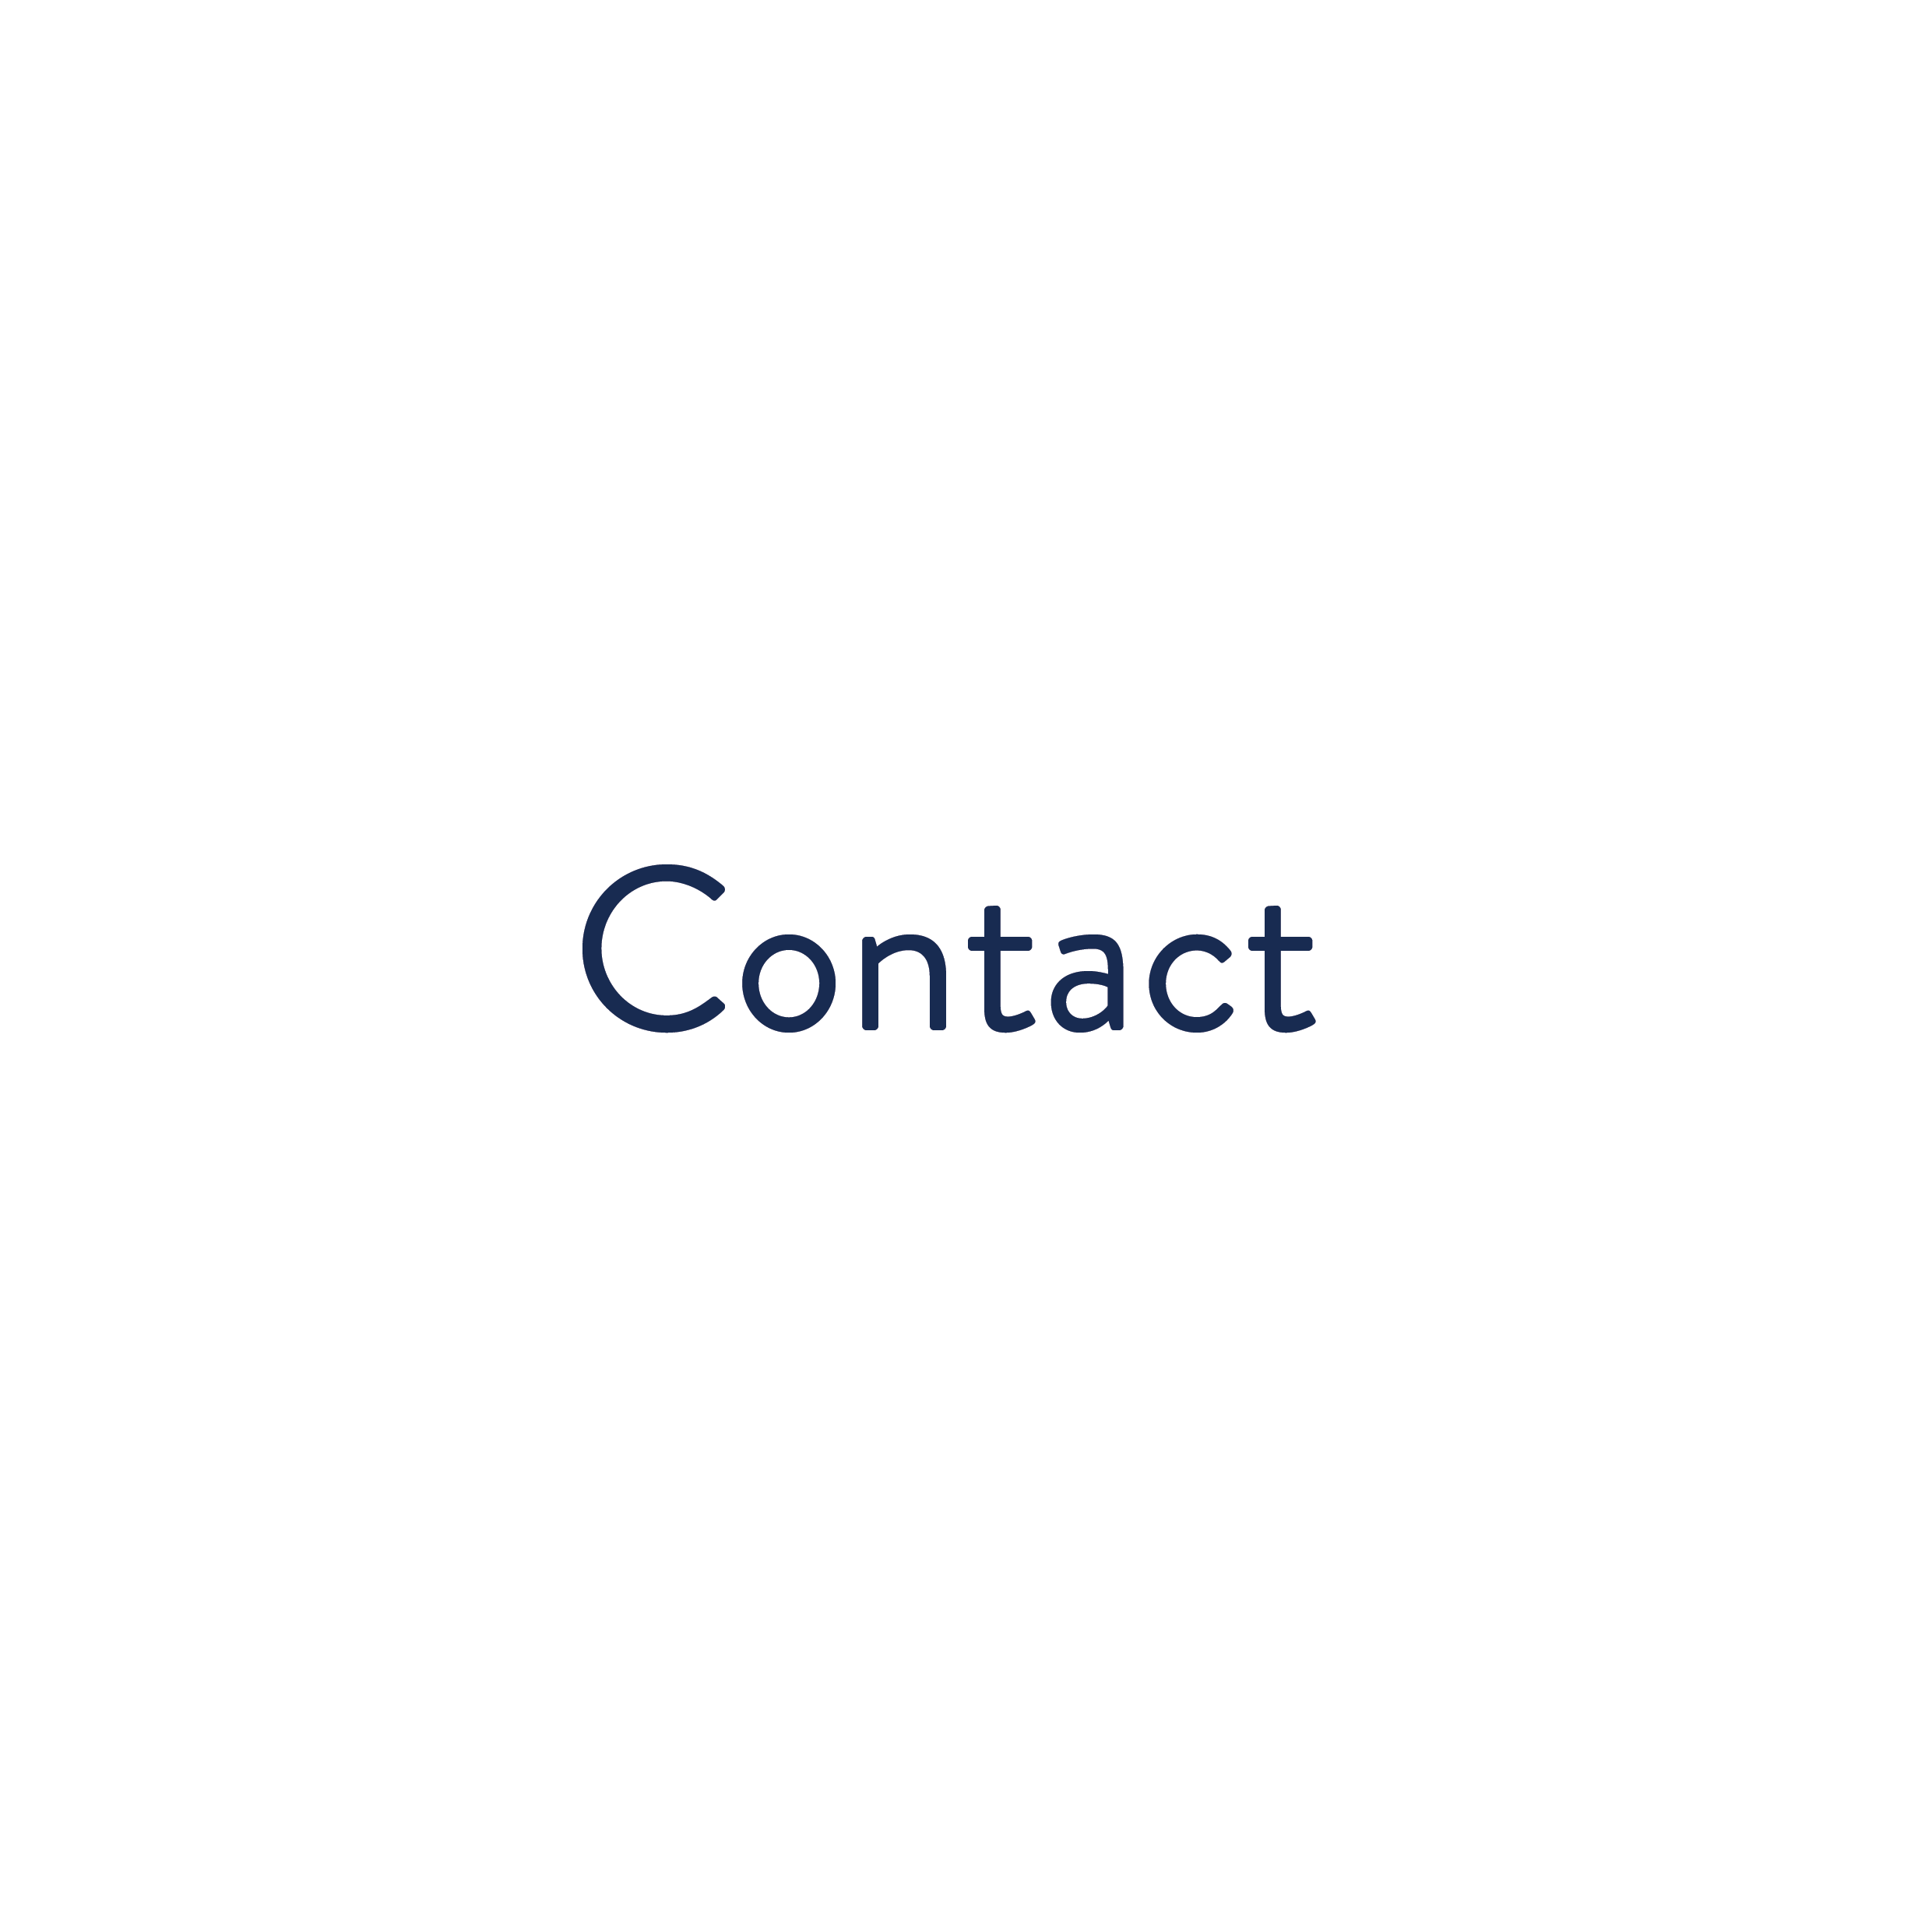 Contact new.png